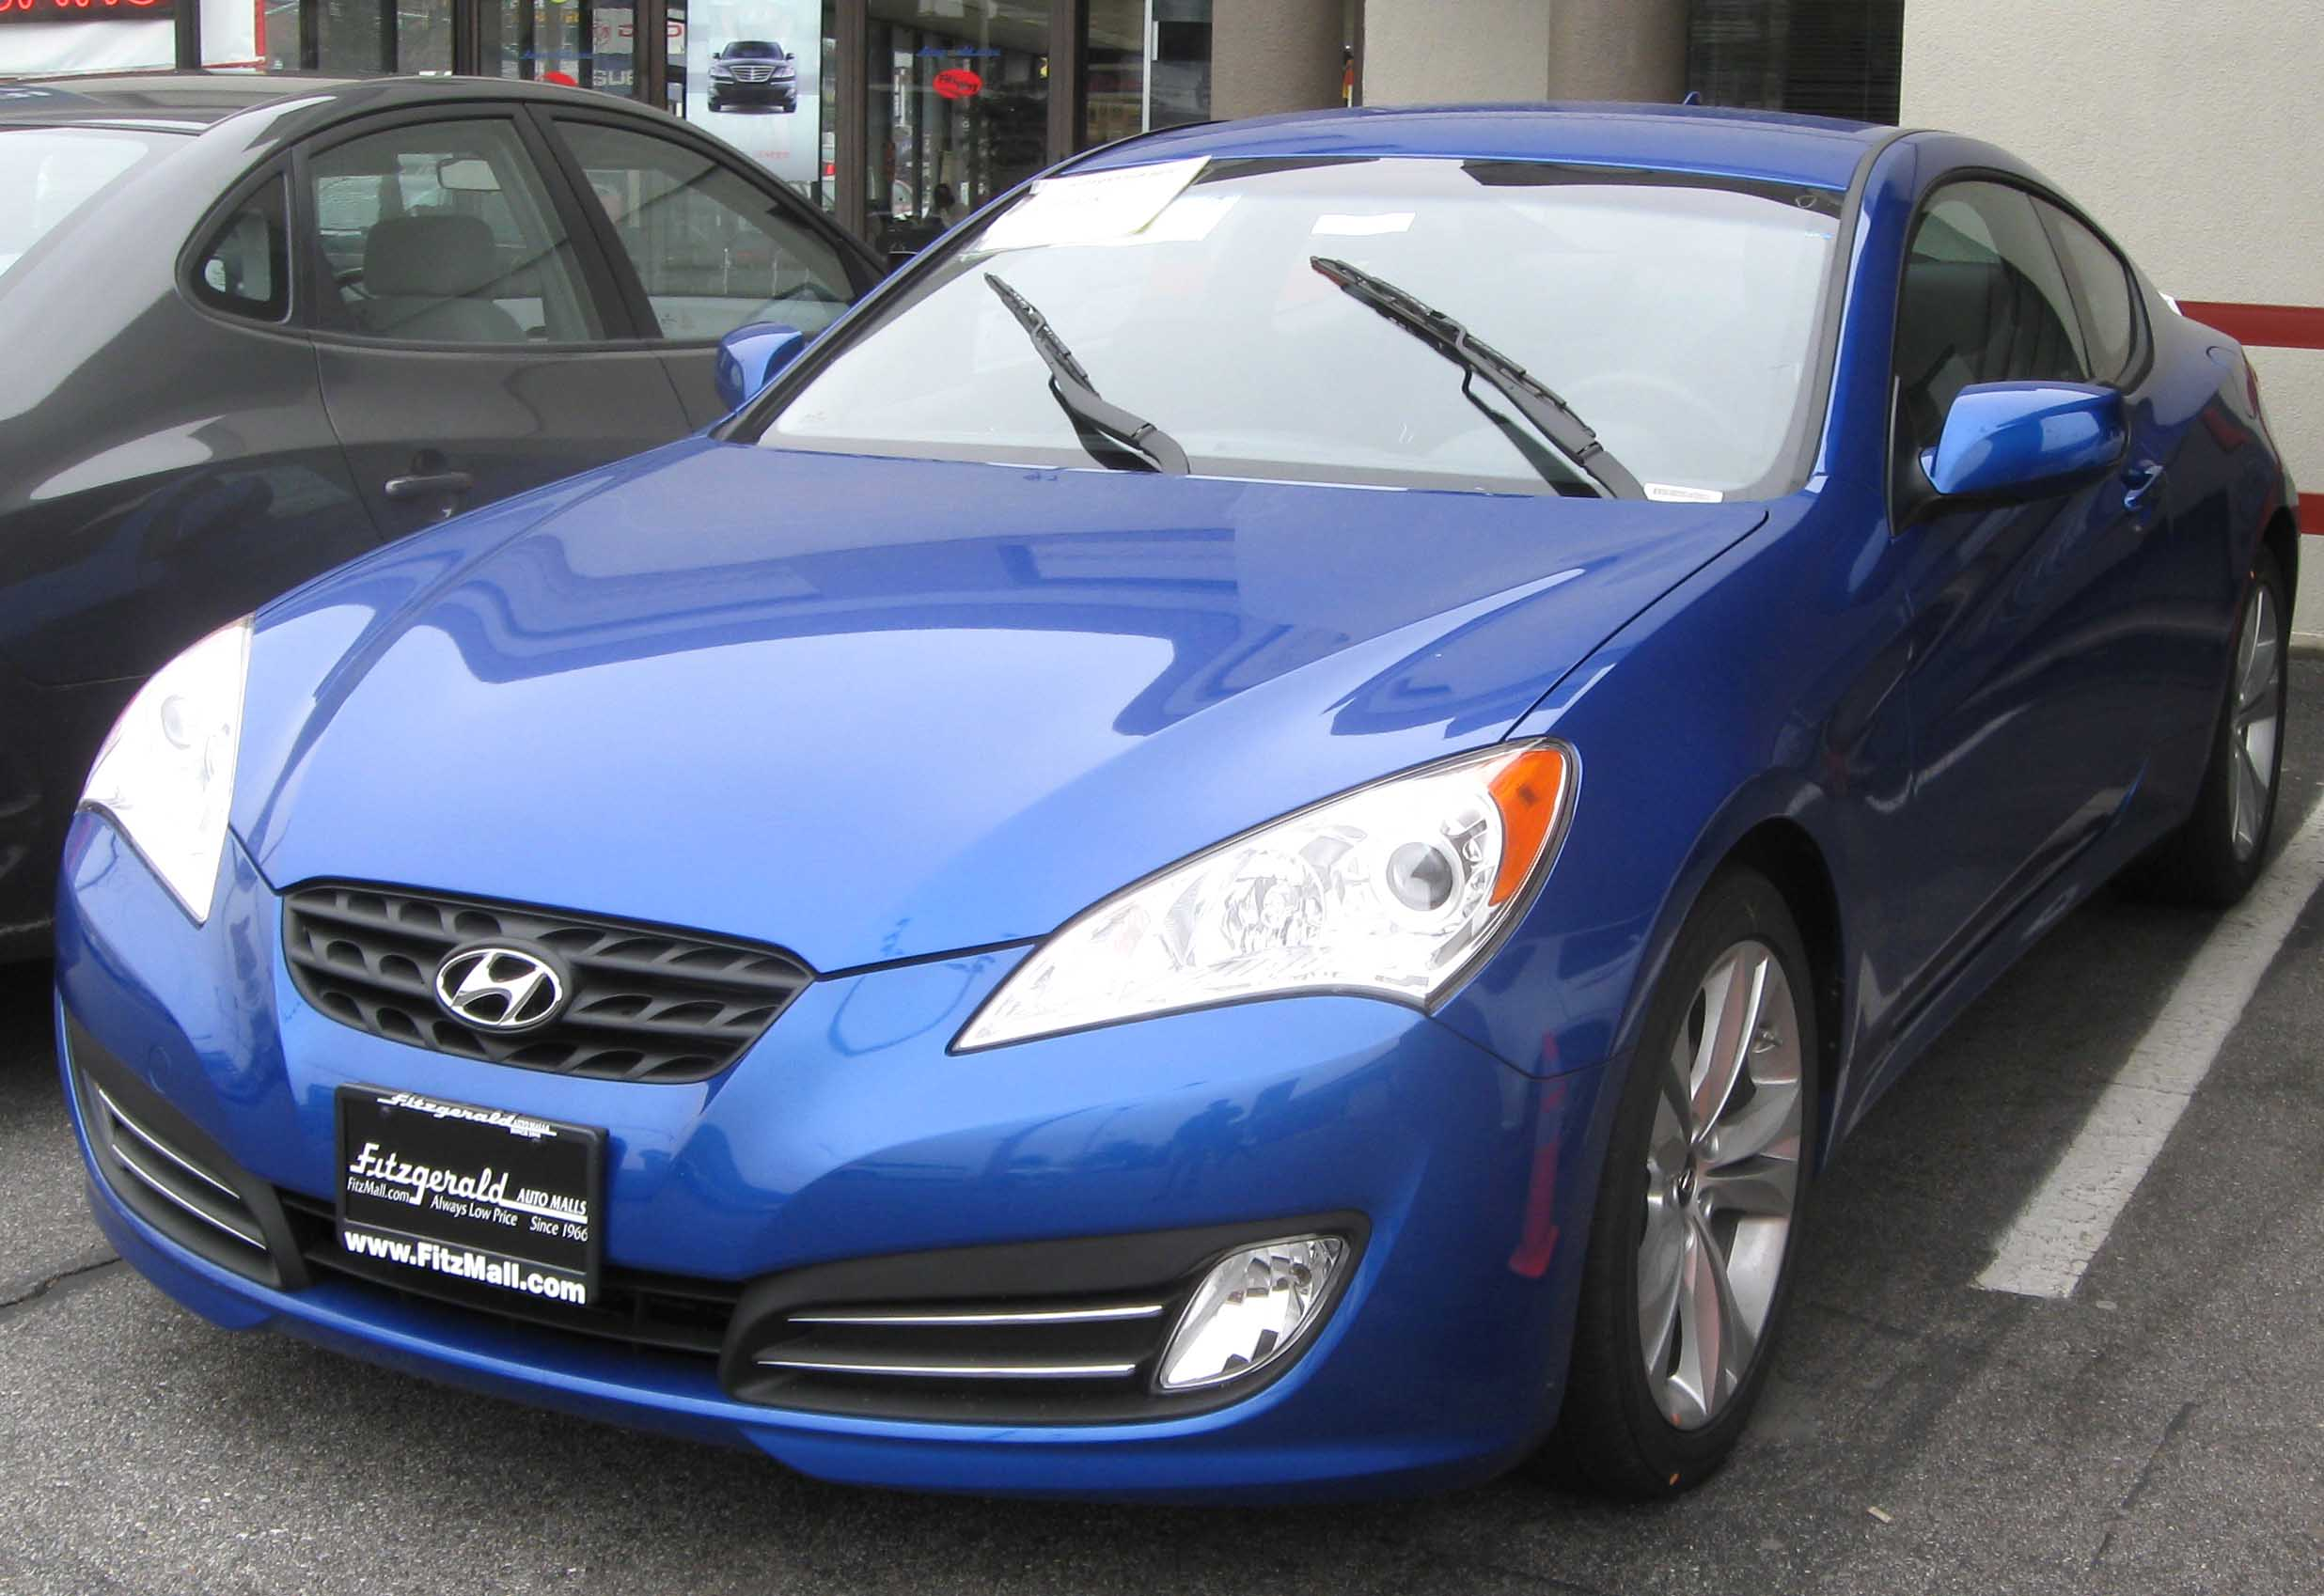 Attractive File:2010 Hyundai Genesis Coupe 3.8